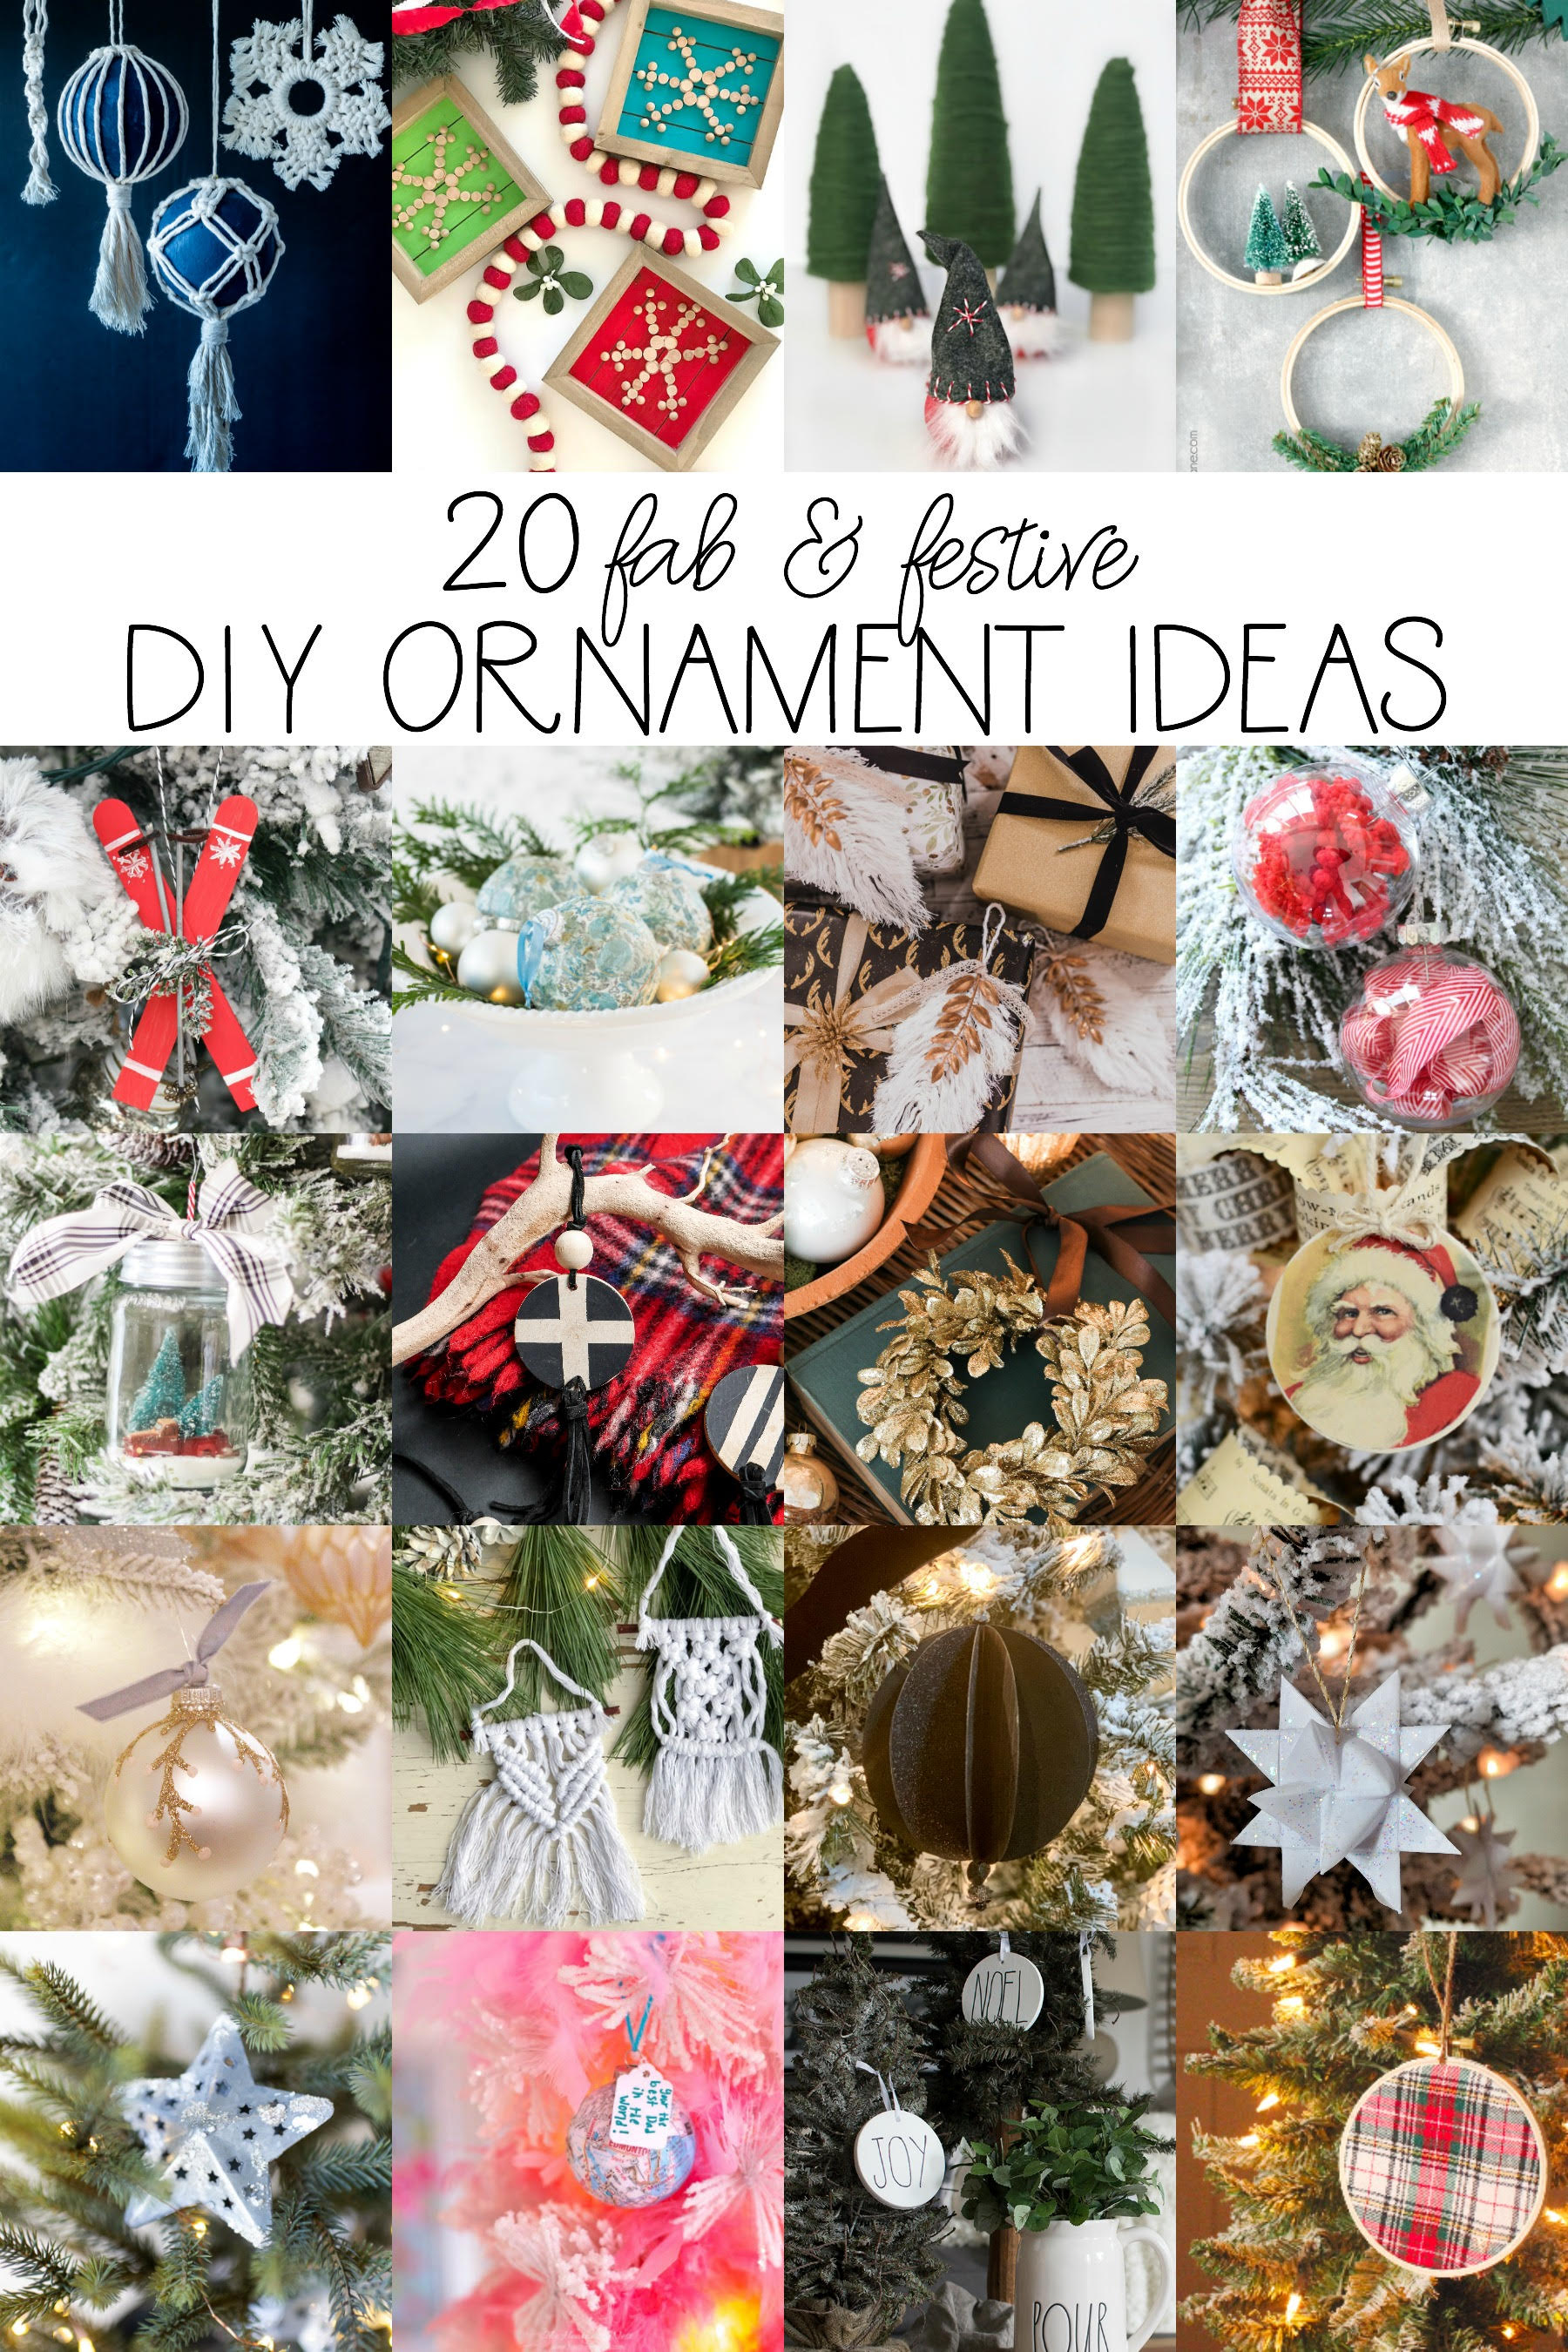 20 Fab & Festive DIY Ornament Ideas